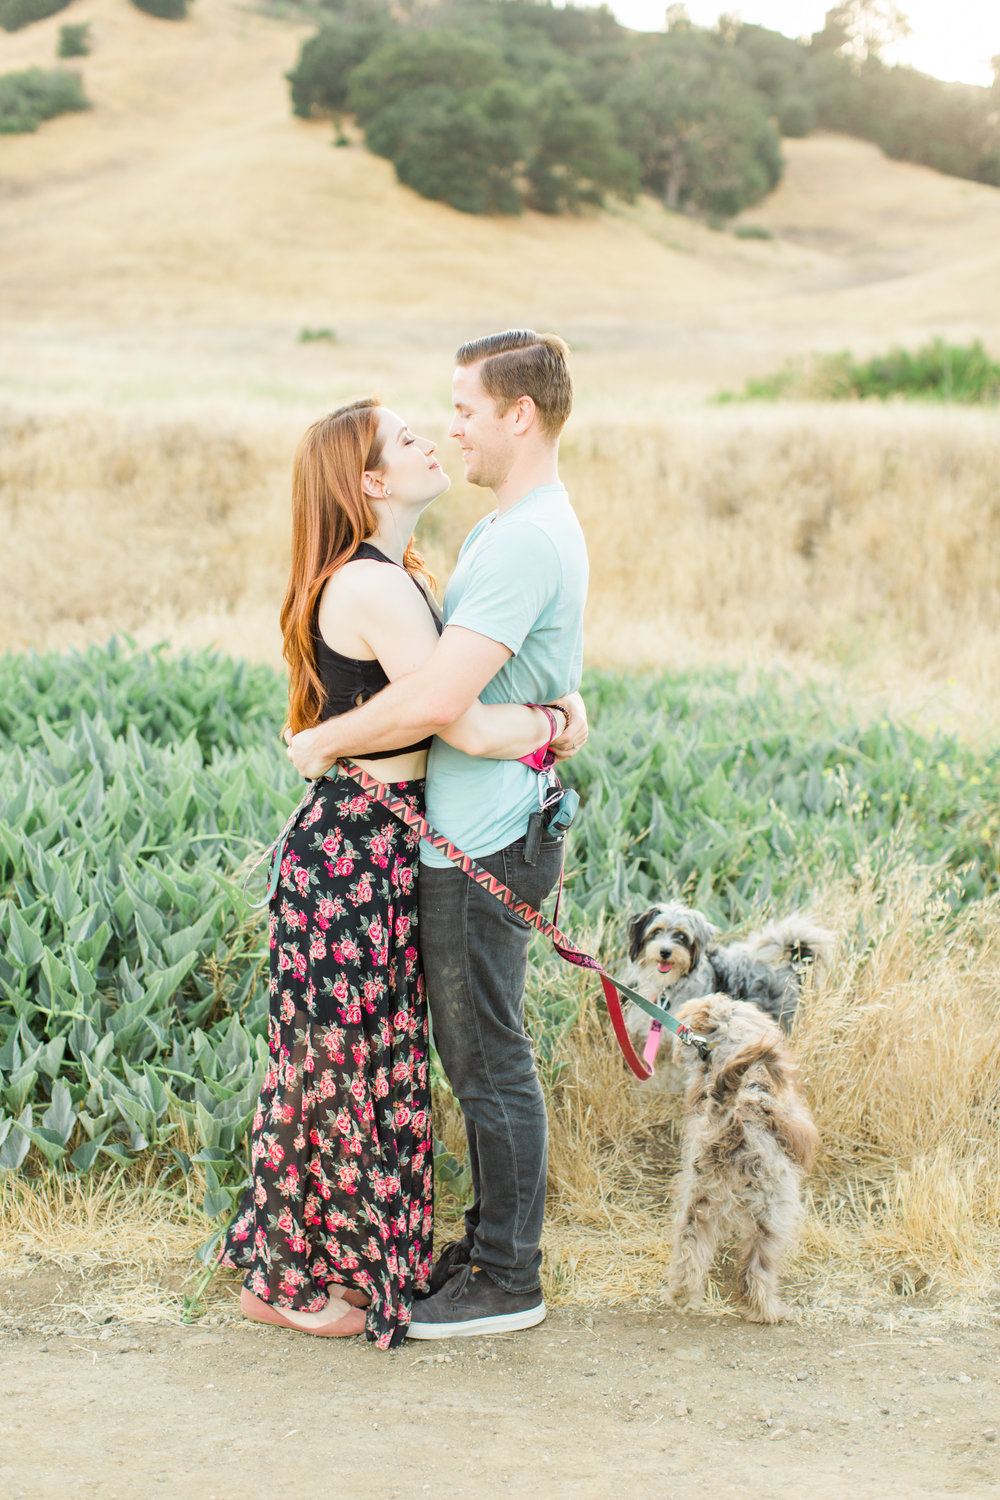 Malibu Engagement Session - Briana + Alex